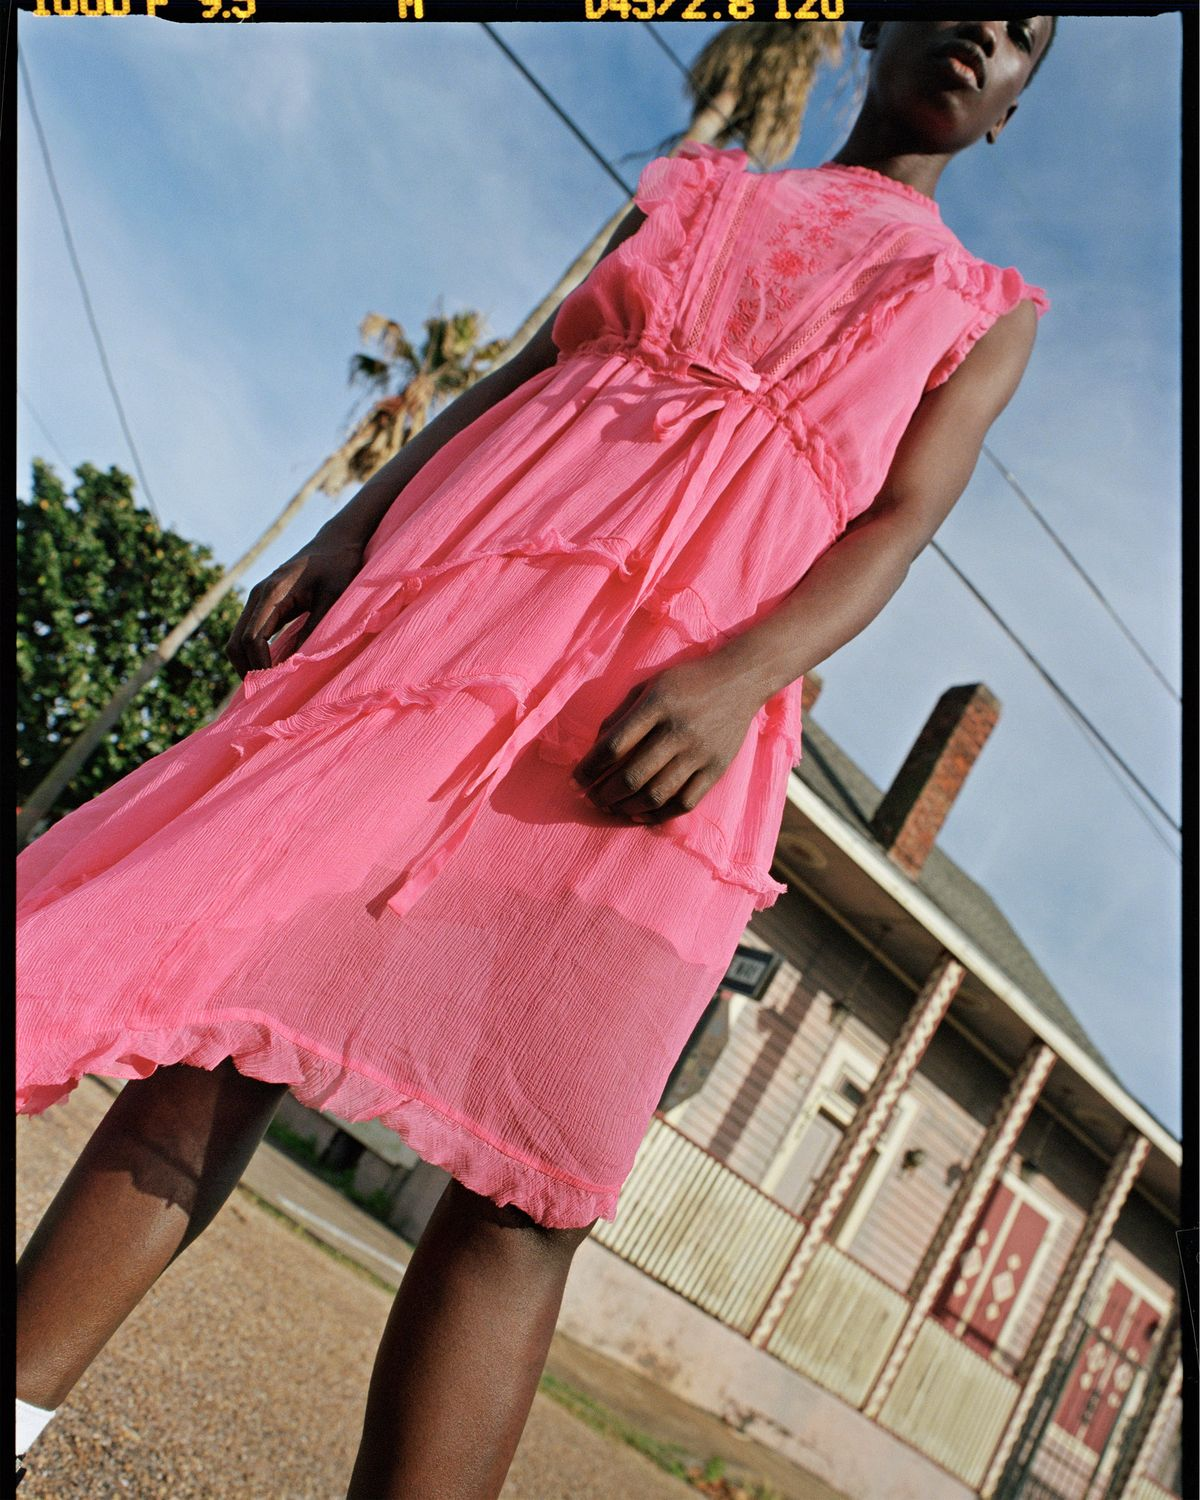 Photograph shot in the streets of New Orleans, featuring a young woman wearing a vibrant, frilled pink dress from our latest summer collection.